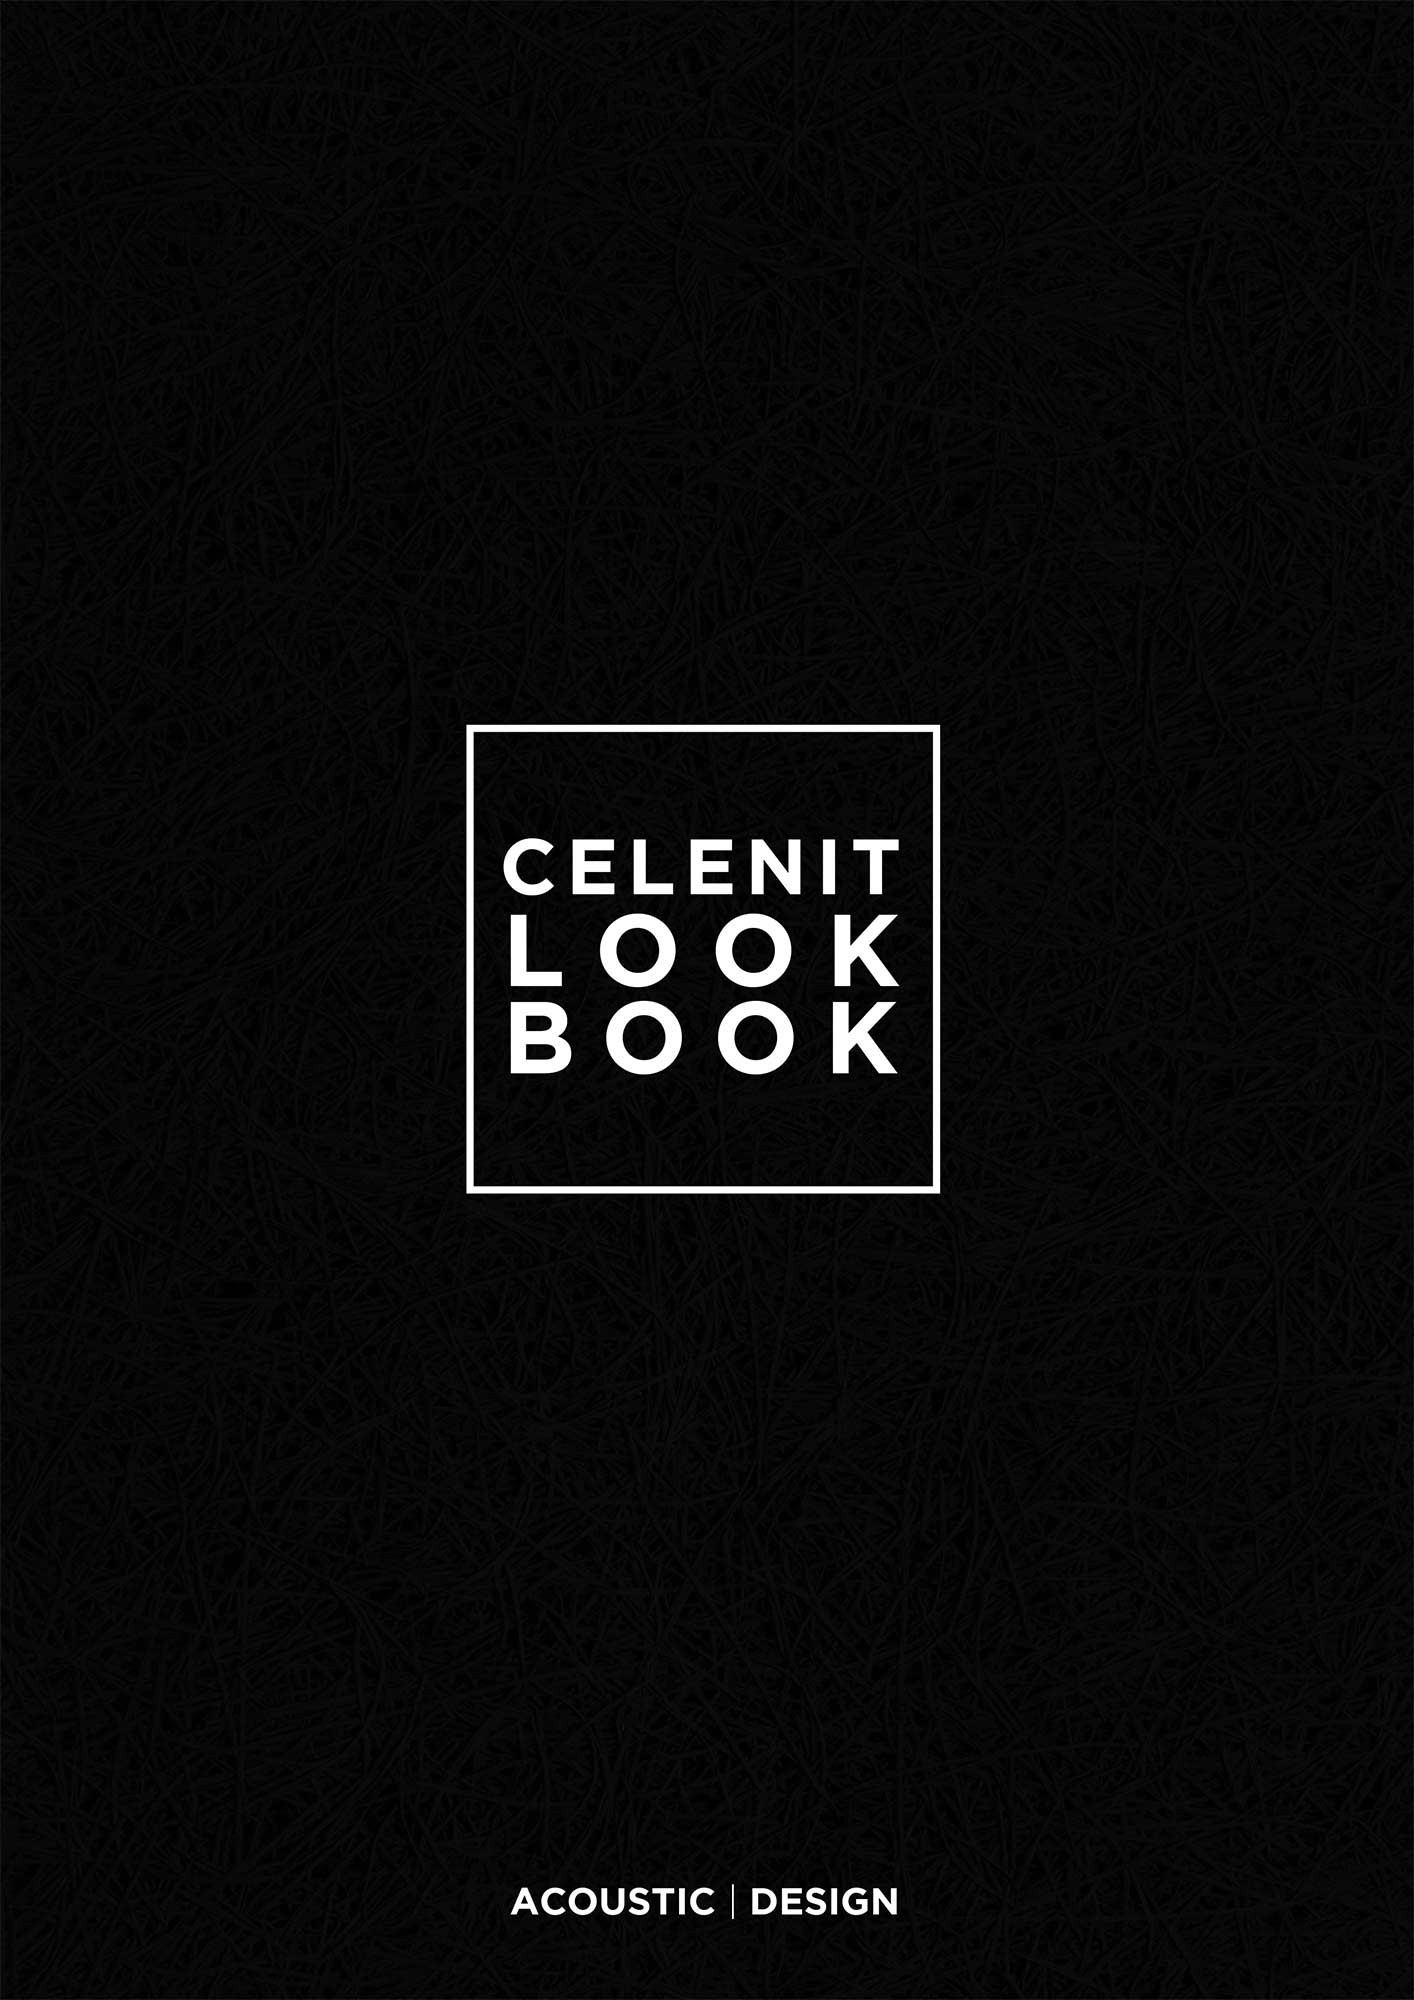 Celenit Look Book